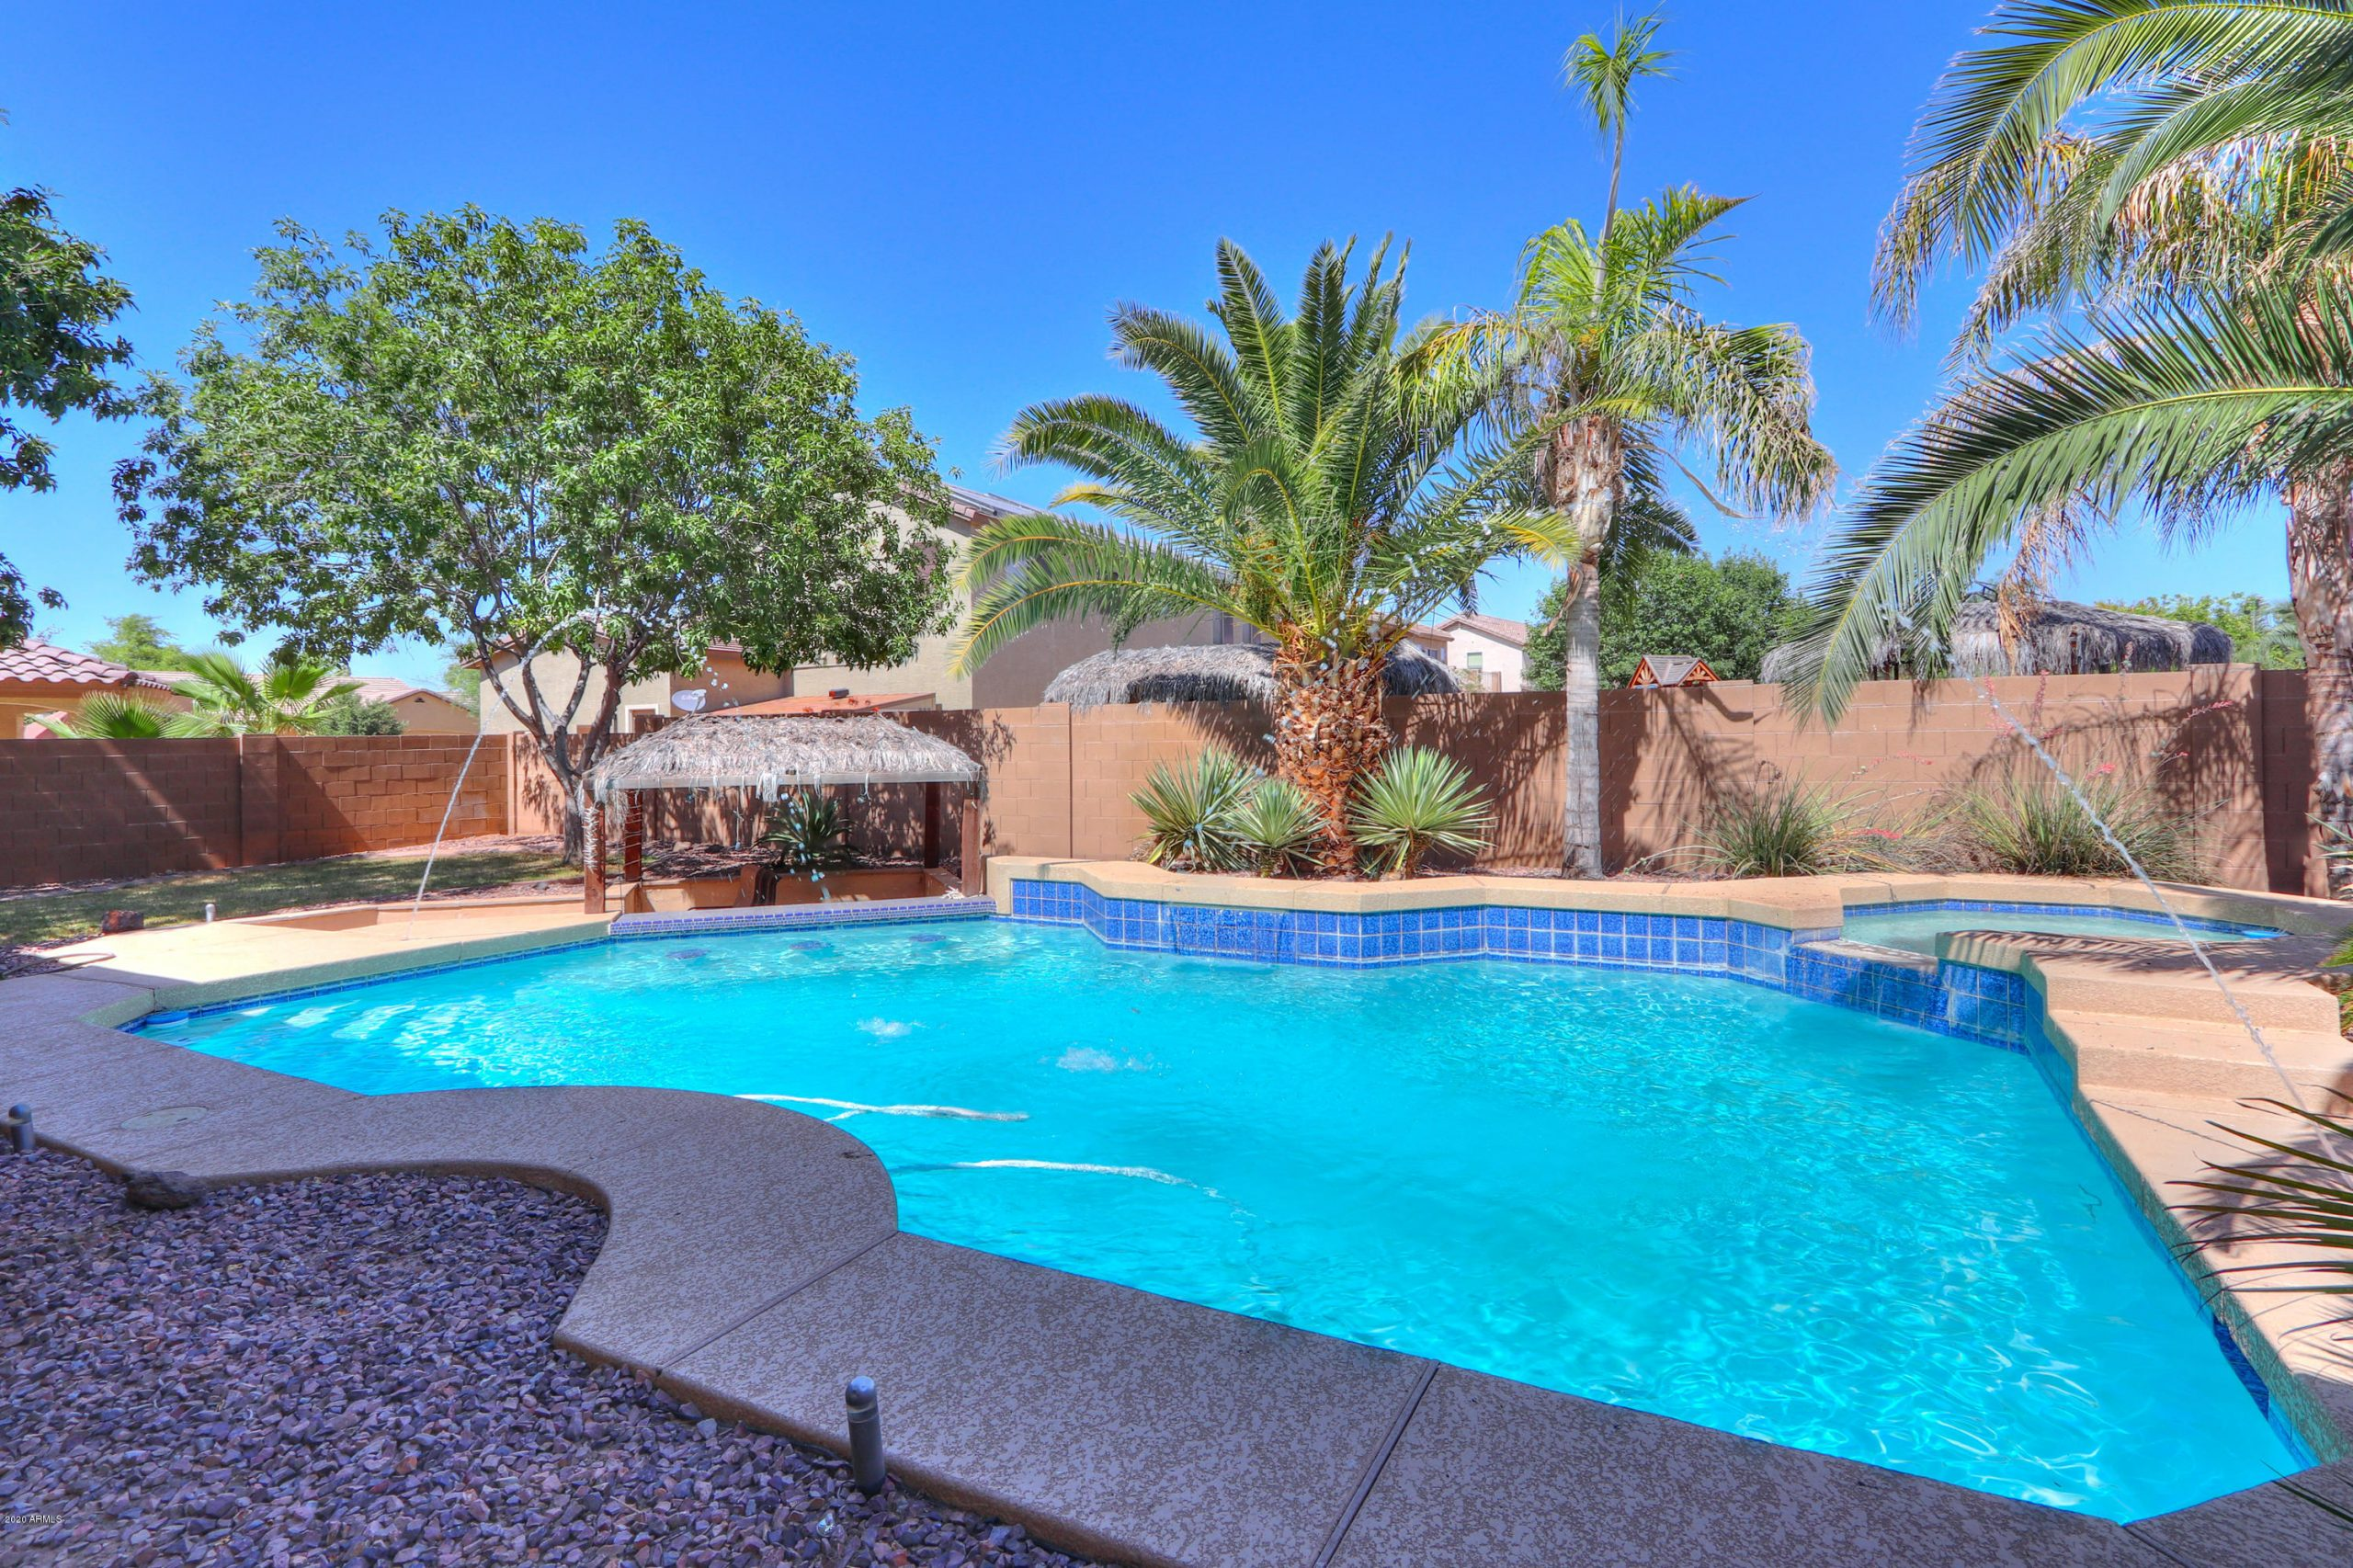 homes for sale in maricopa az with pool